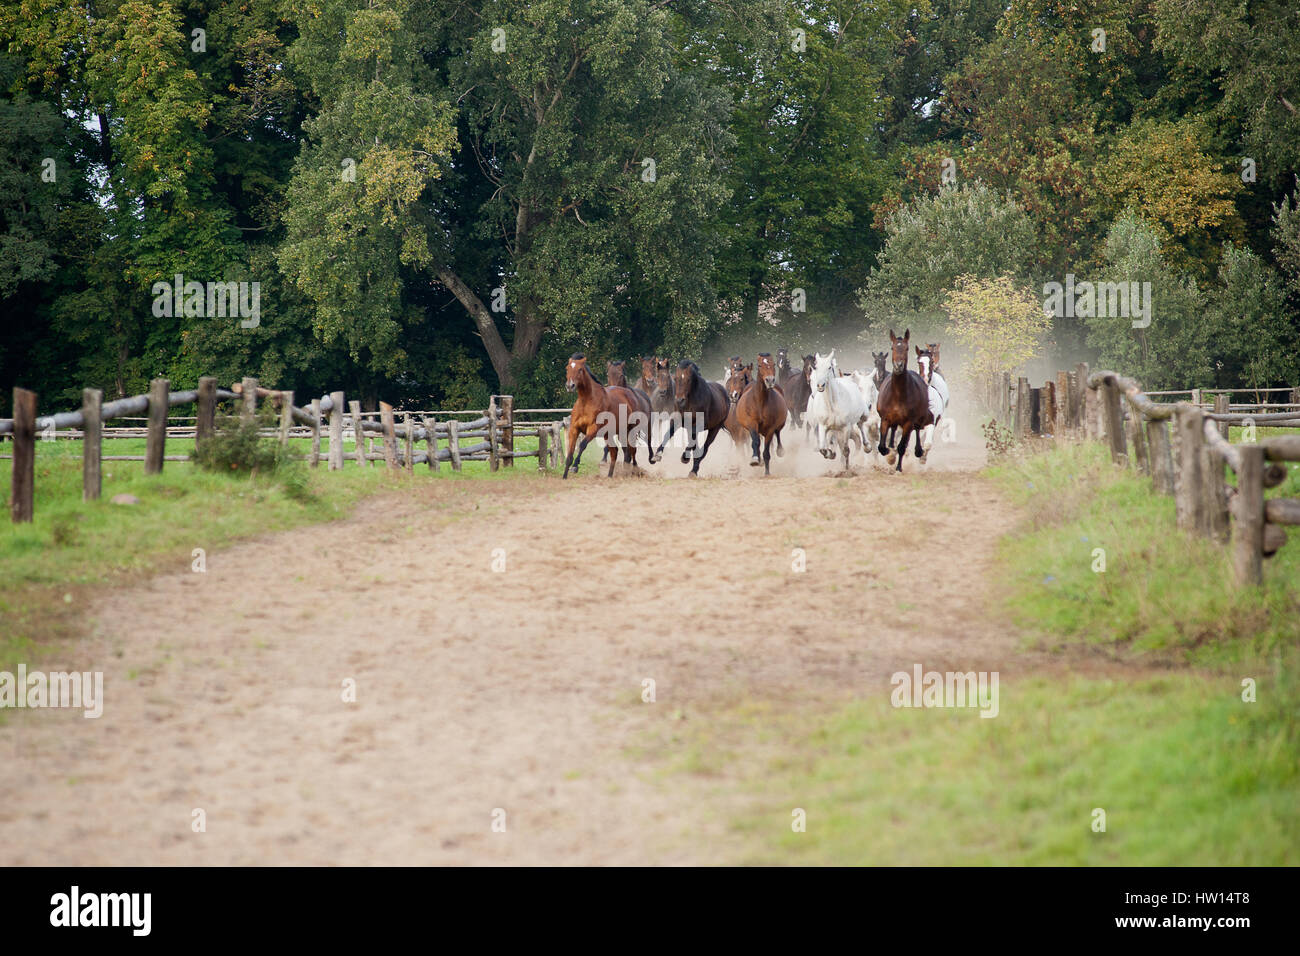 horses galloping - thoroughbred horse farm - Stock Image